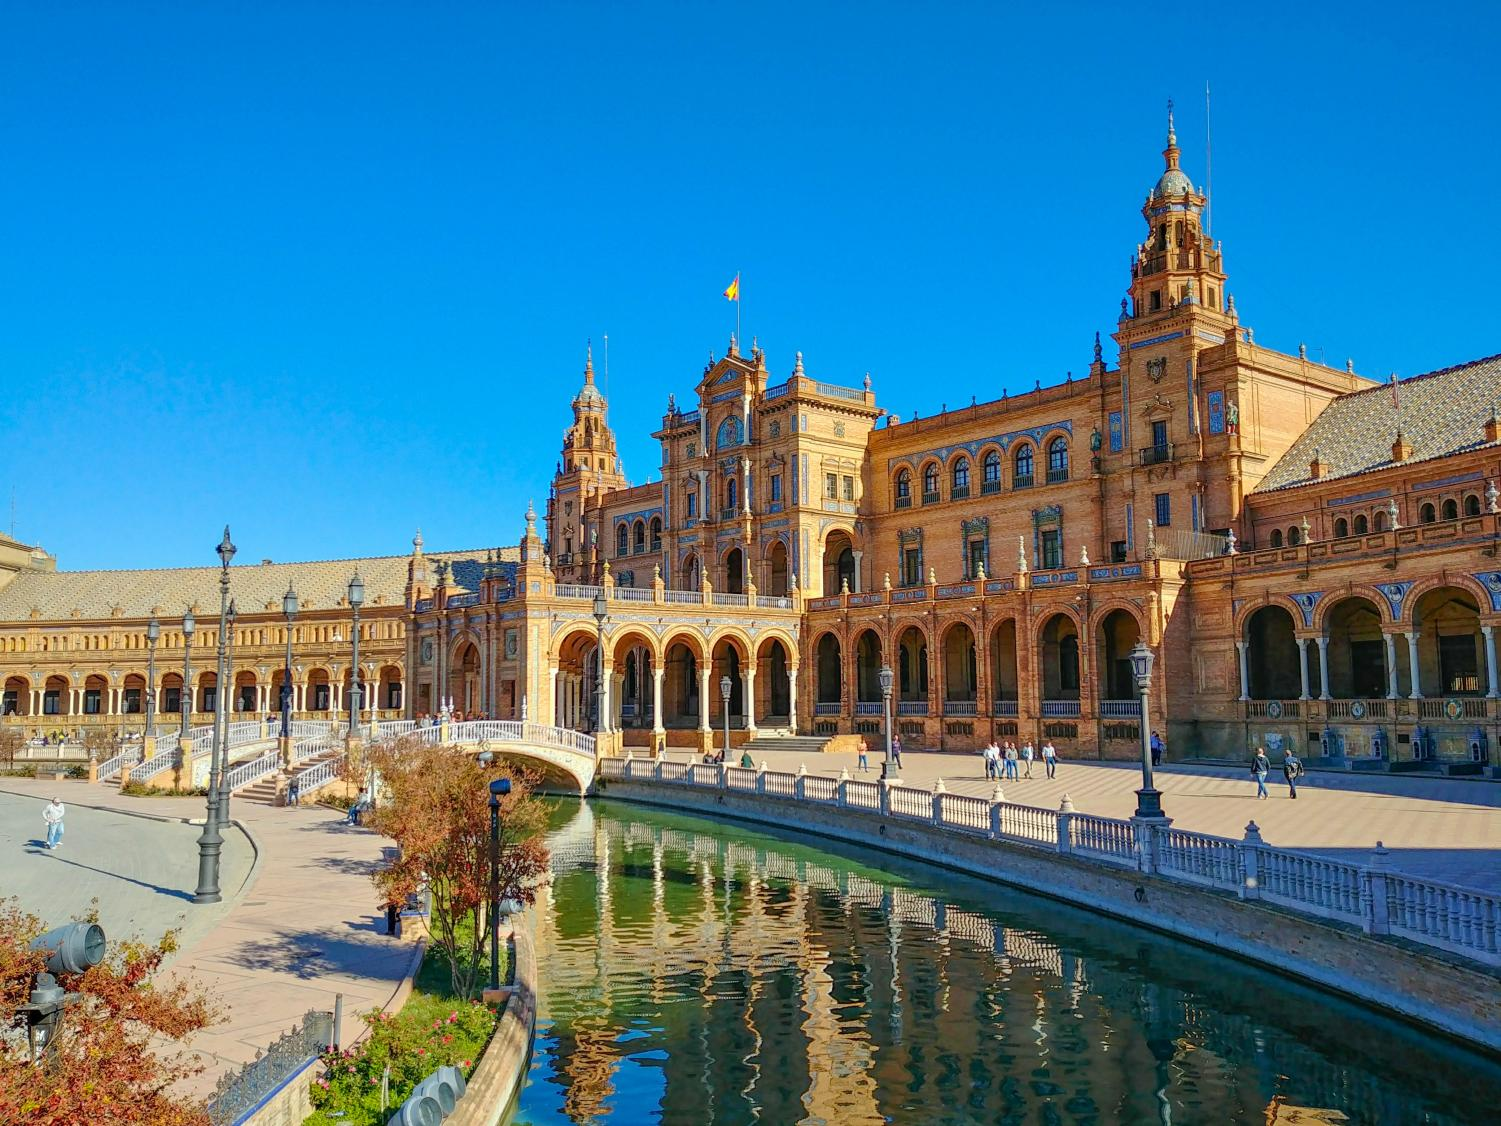 La Plaza de España in Seville, Spain